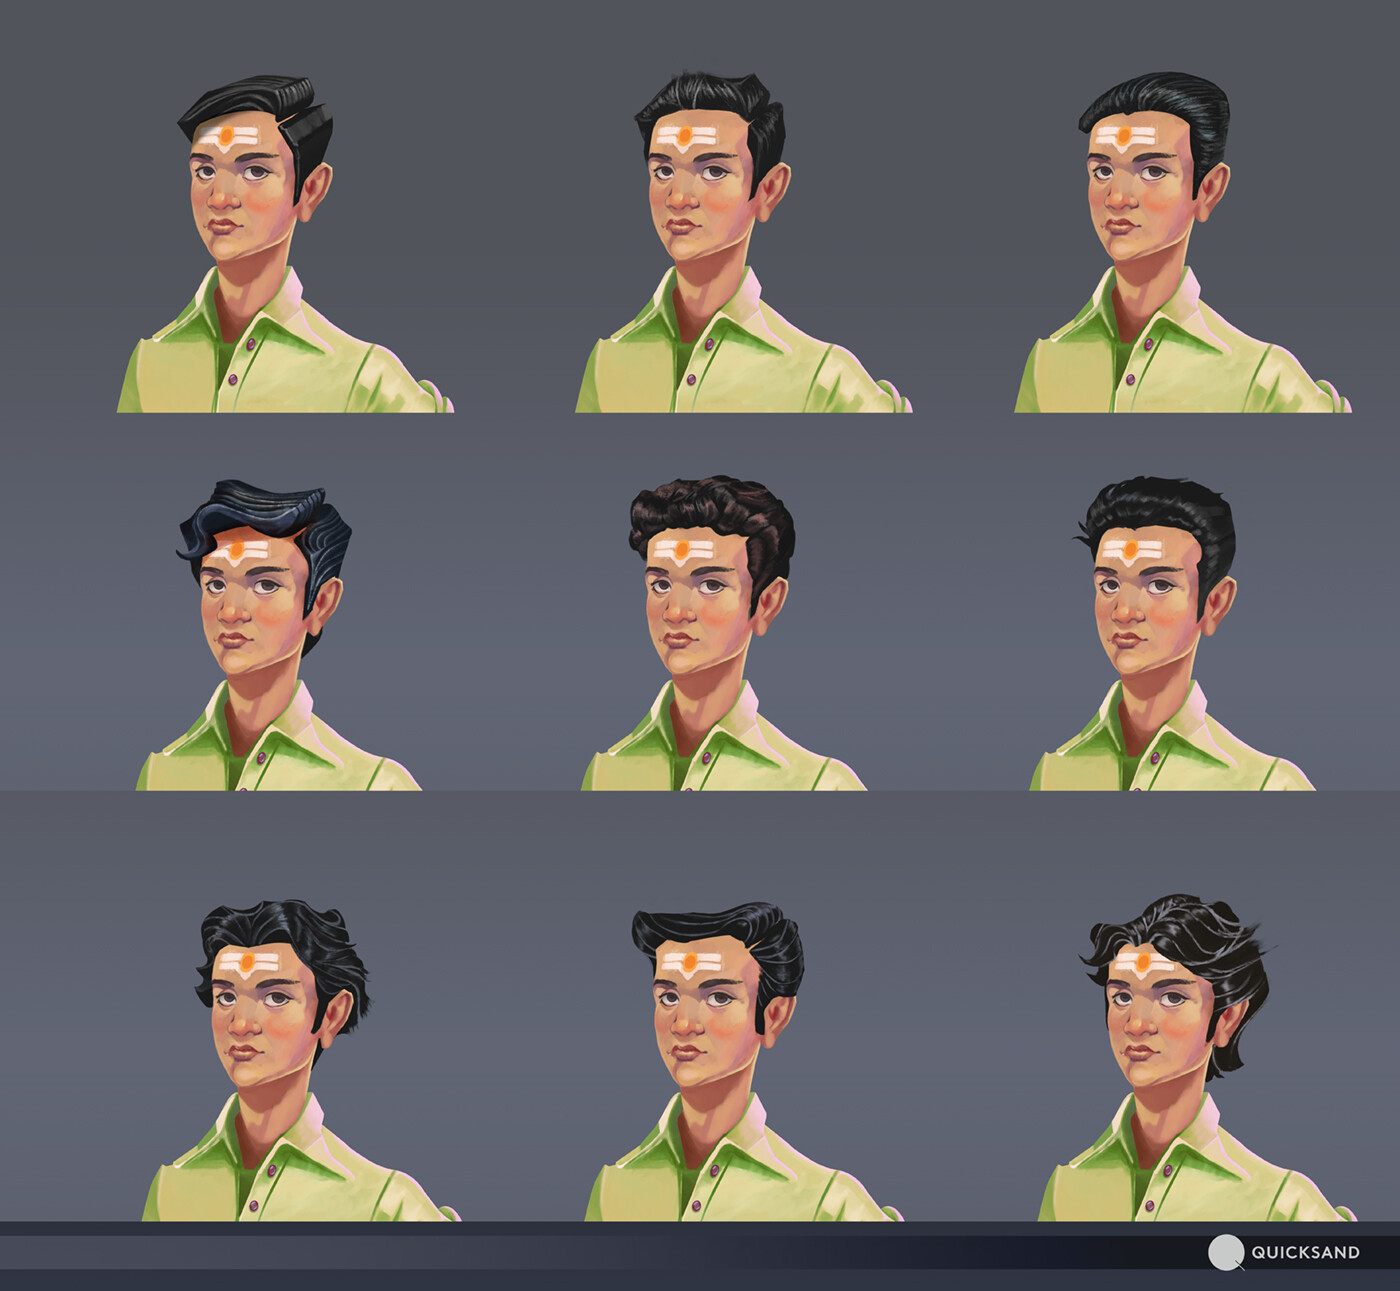 Hairstyles options